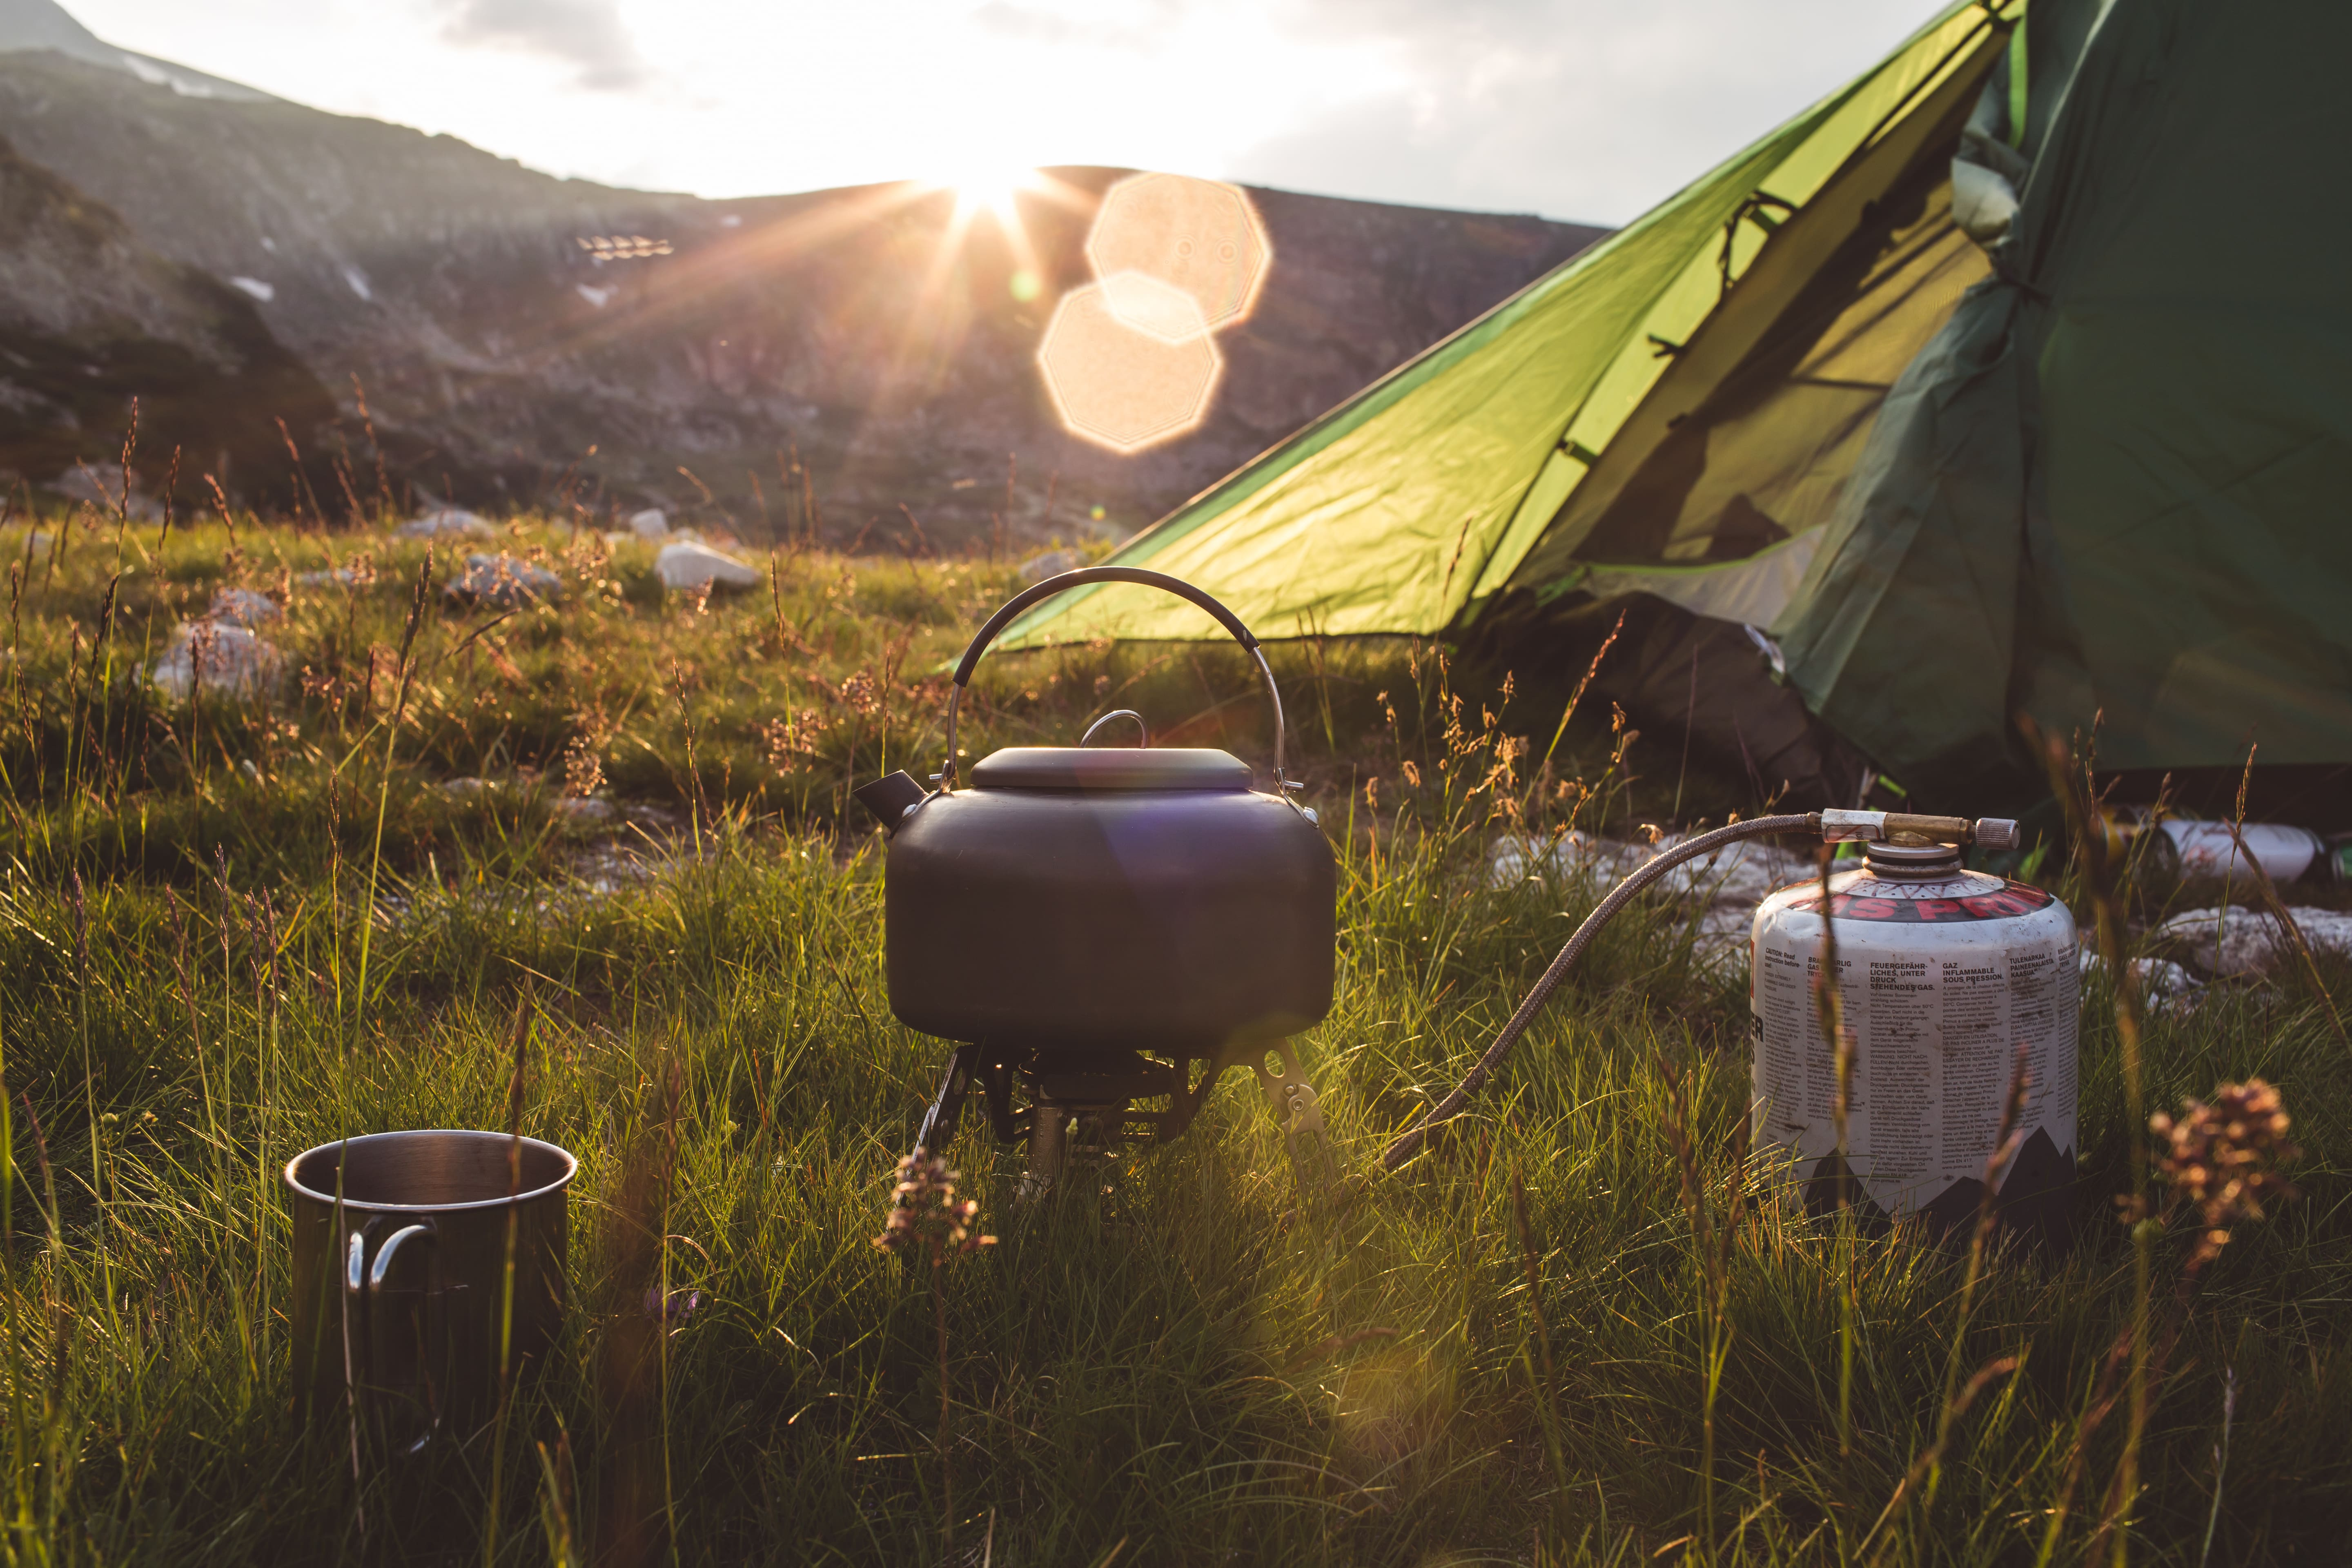 Camping teapot and cap on the grass at sunrise time